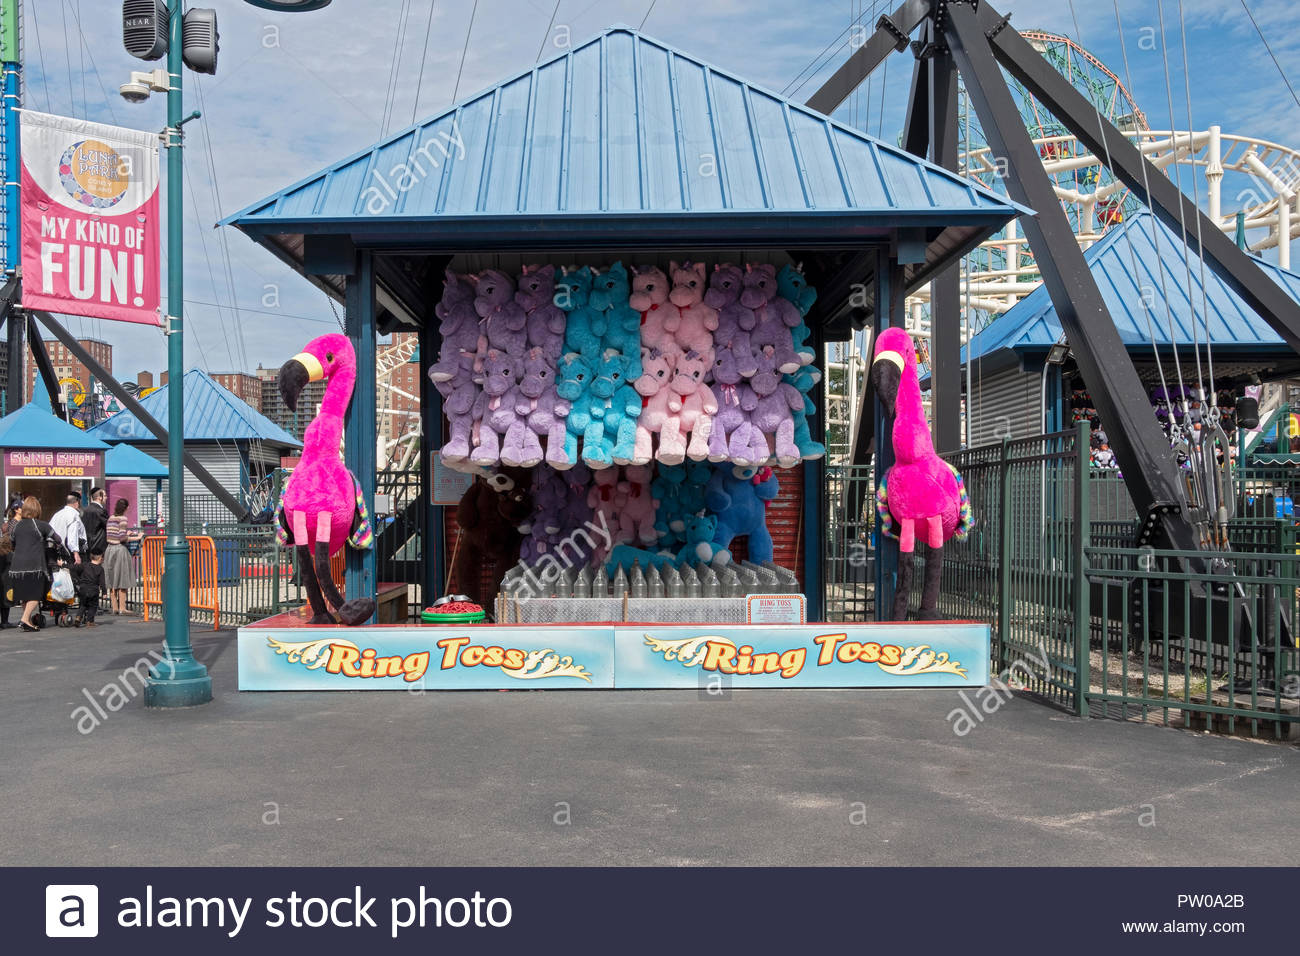 The RING TOSS game at Luna Park, just off the boardwalk in Coney Island, Brooklyn, New York. - Stock Image